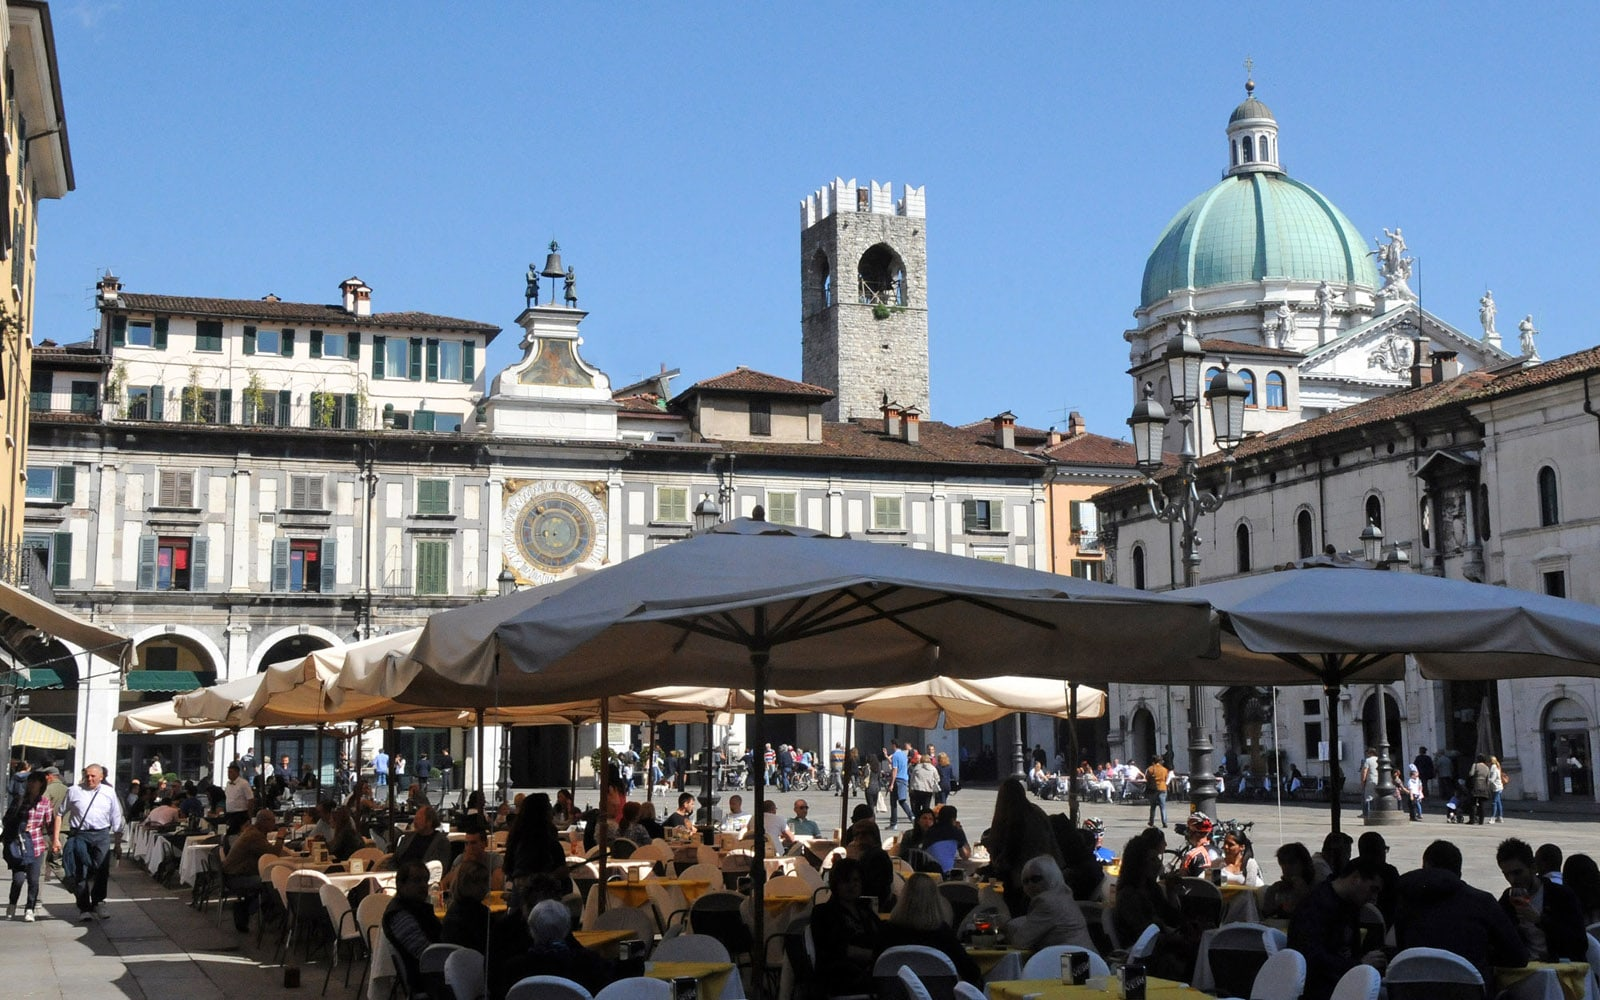 Guided Tours of the City Center of Brescia